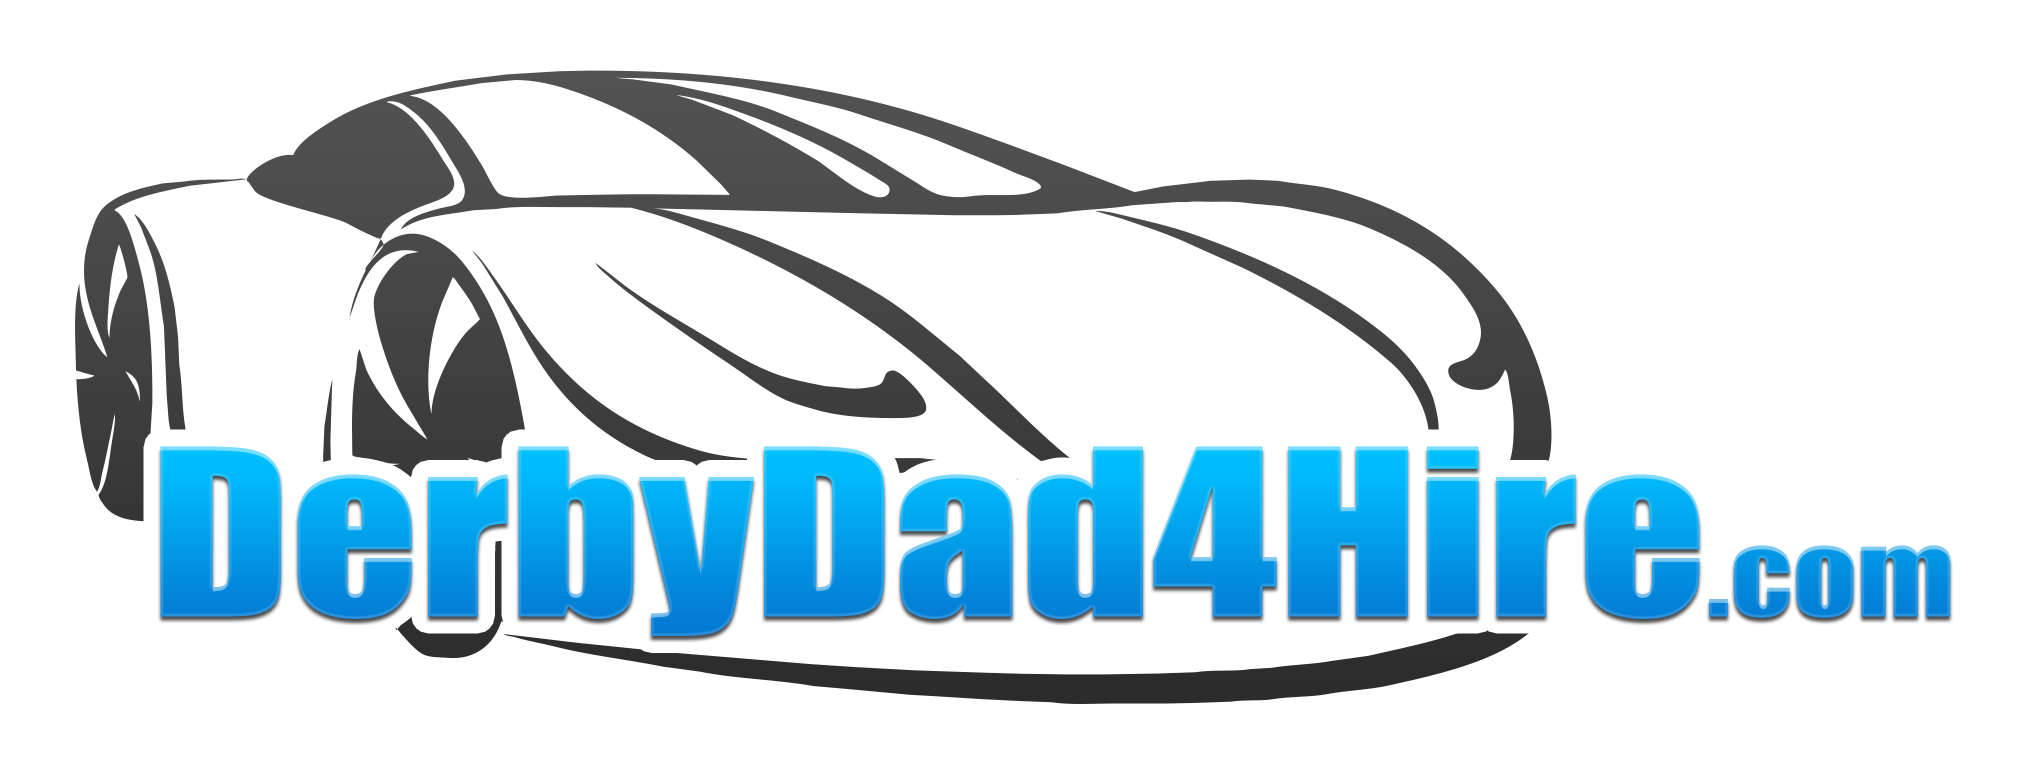 www.derbydad4hire.com